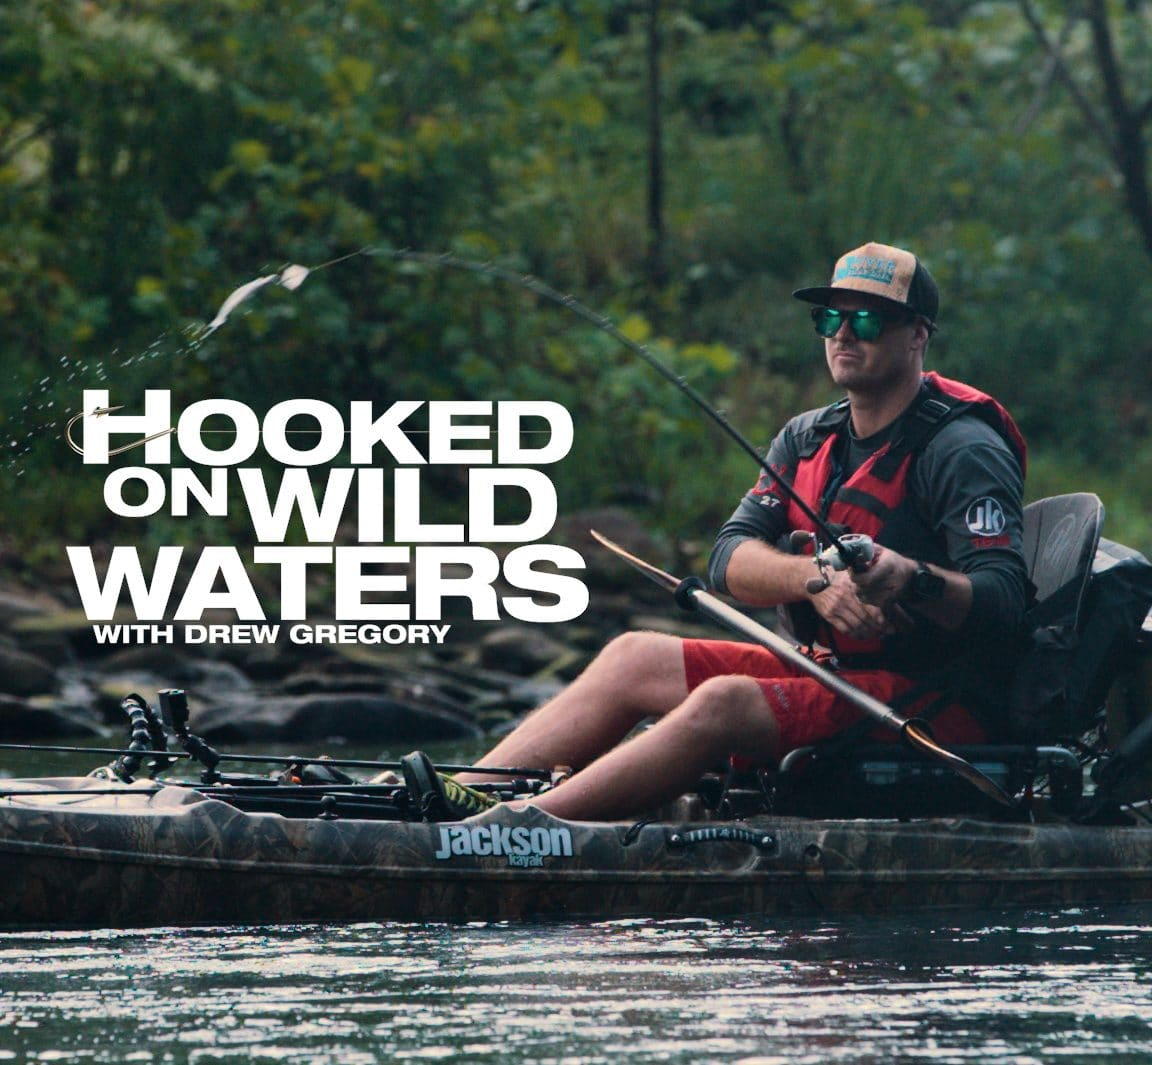 VIDEO: New Hooked on Wild Waters Sizzle Reel